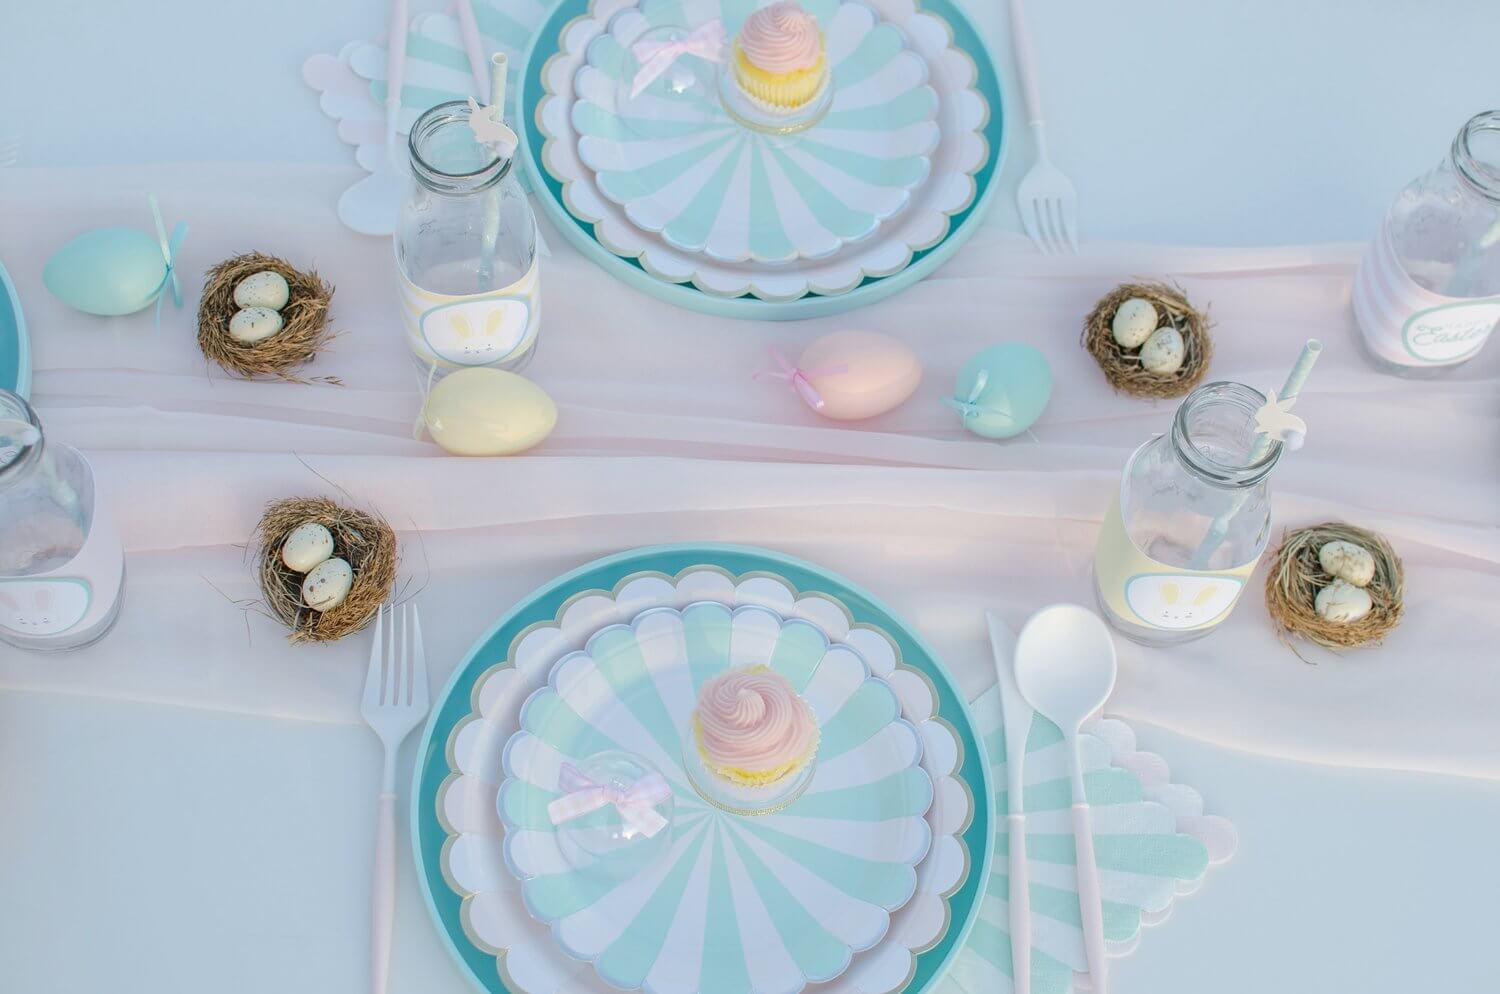 Pretty party paper supplies for an Easter garden party in pink and mint colors. Cute little nests with speckled Easter eggs are the perfect favor. Styling by Mint Event Design www.minteventdesign.com #easterparty #gardenparty #partysupplies #tablescape #eastertable